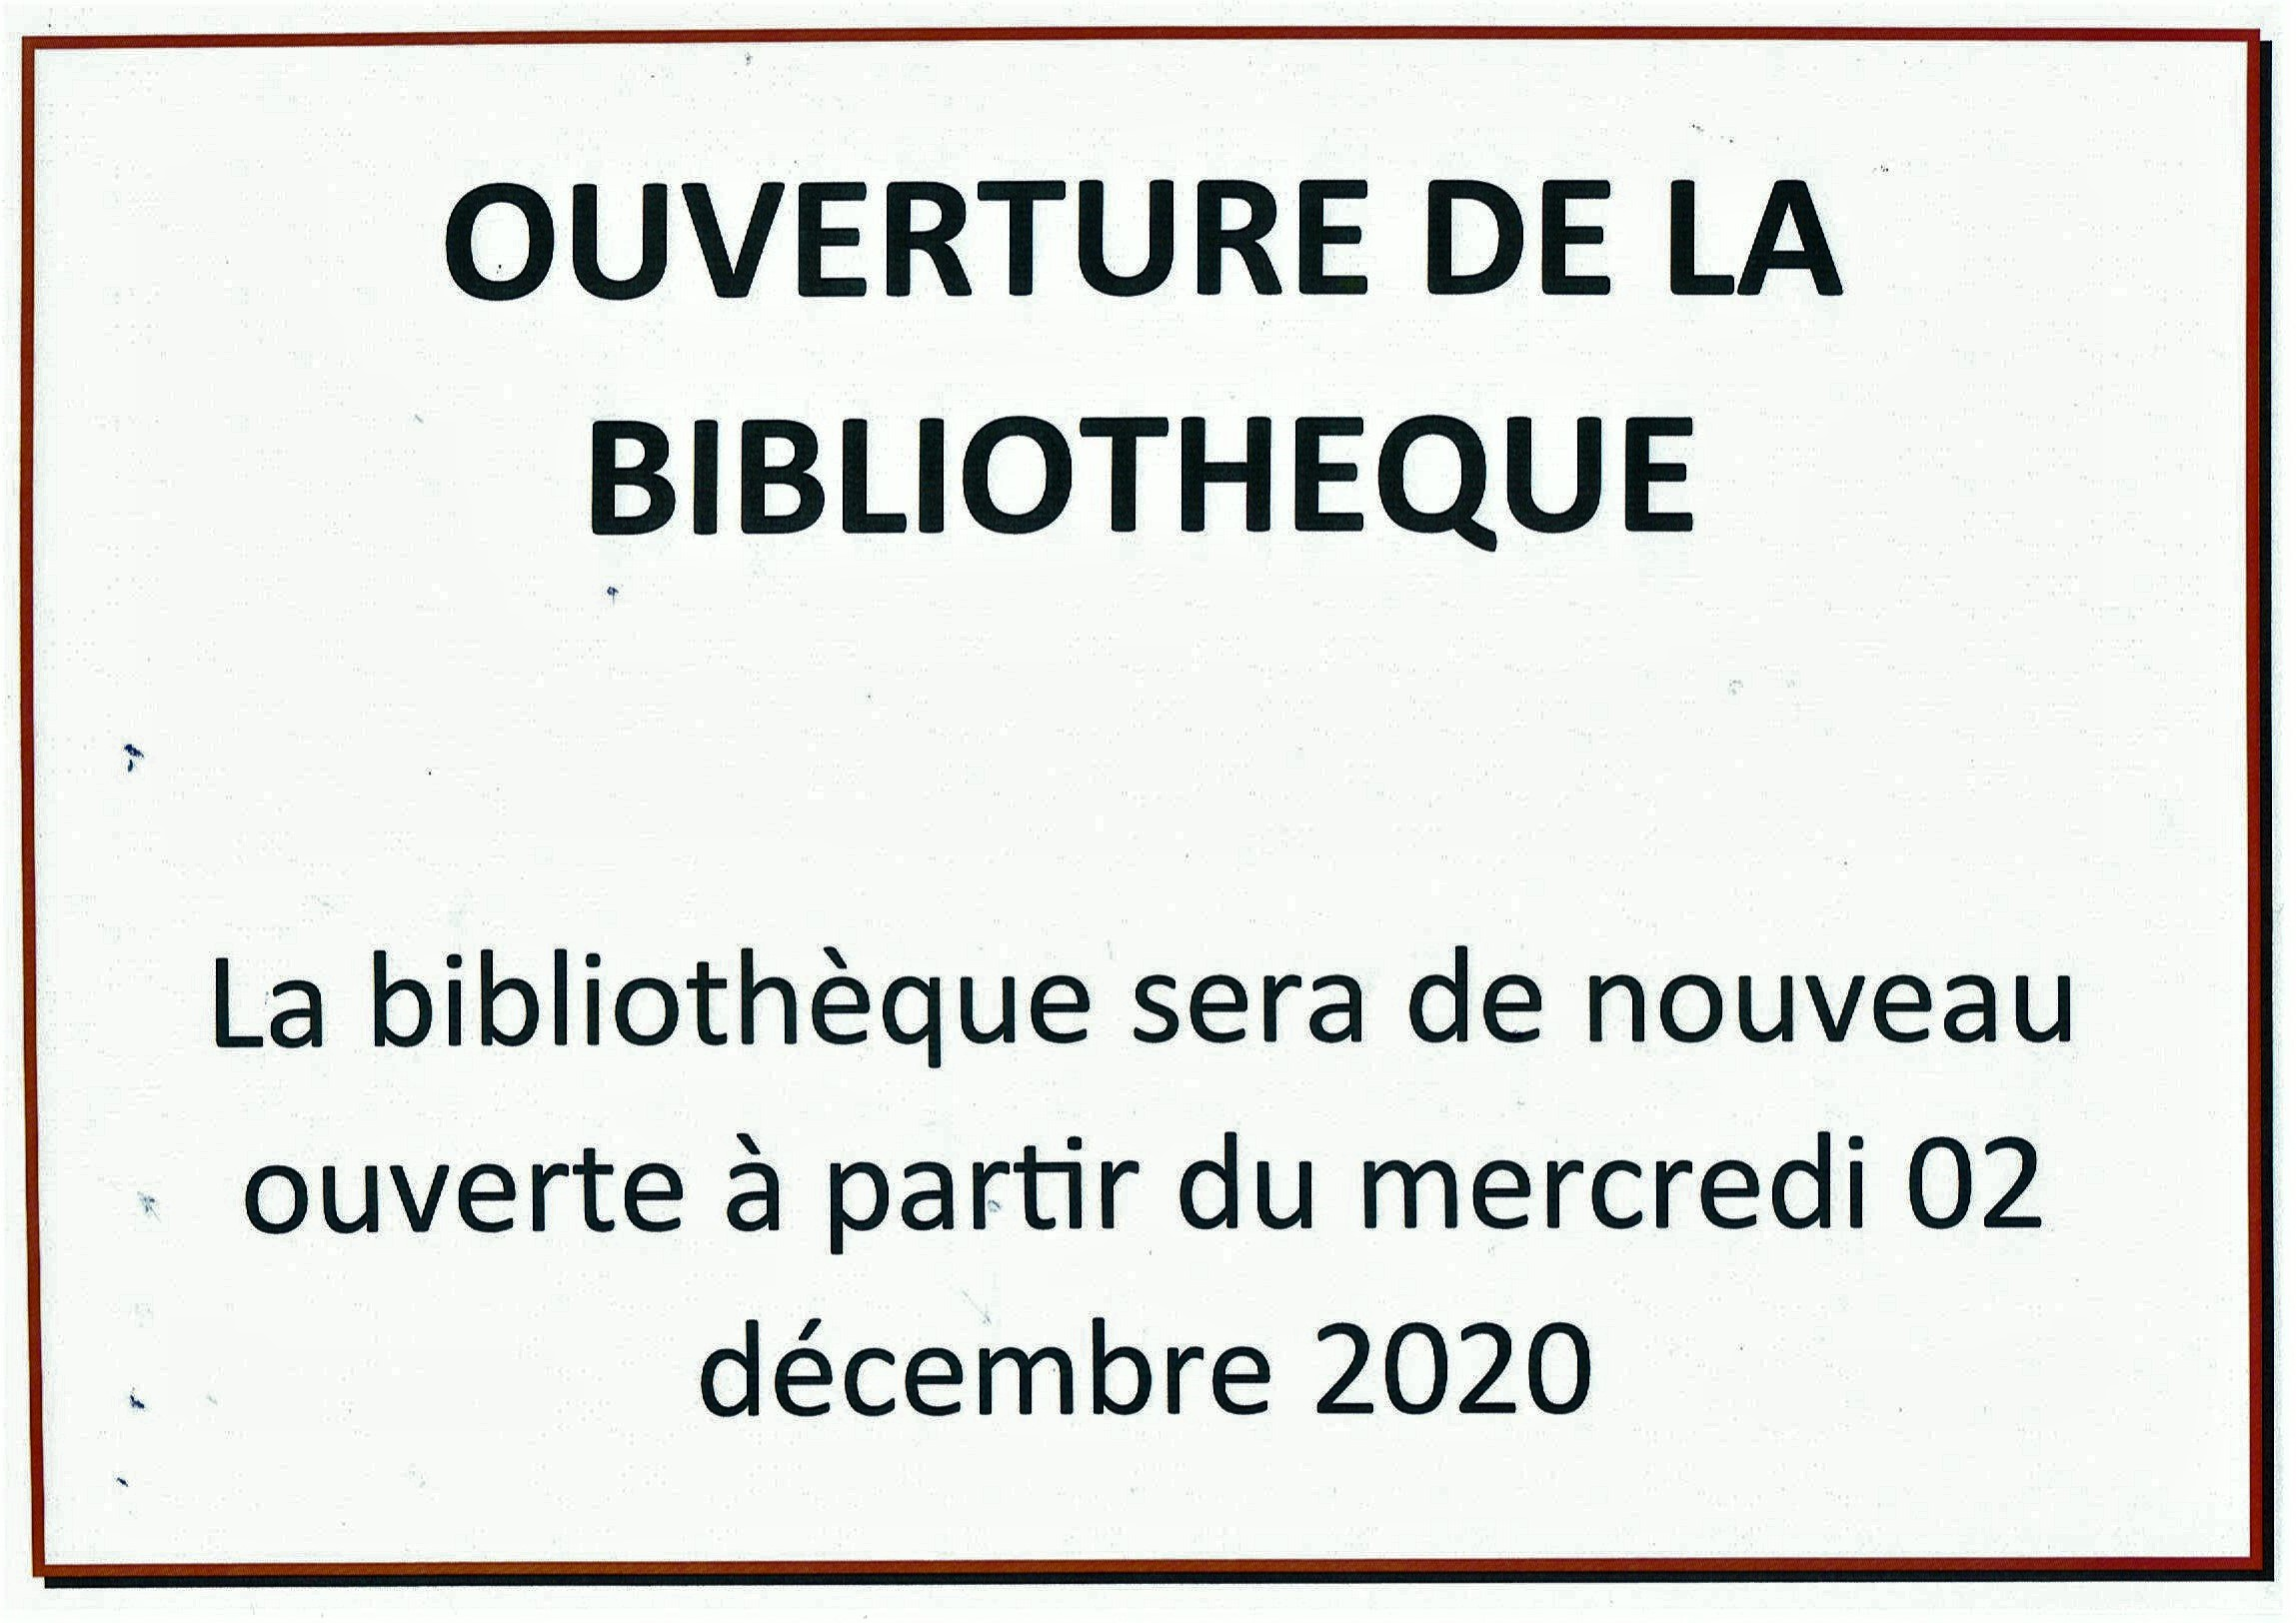 Ouverture_bibliotheeque.jpg